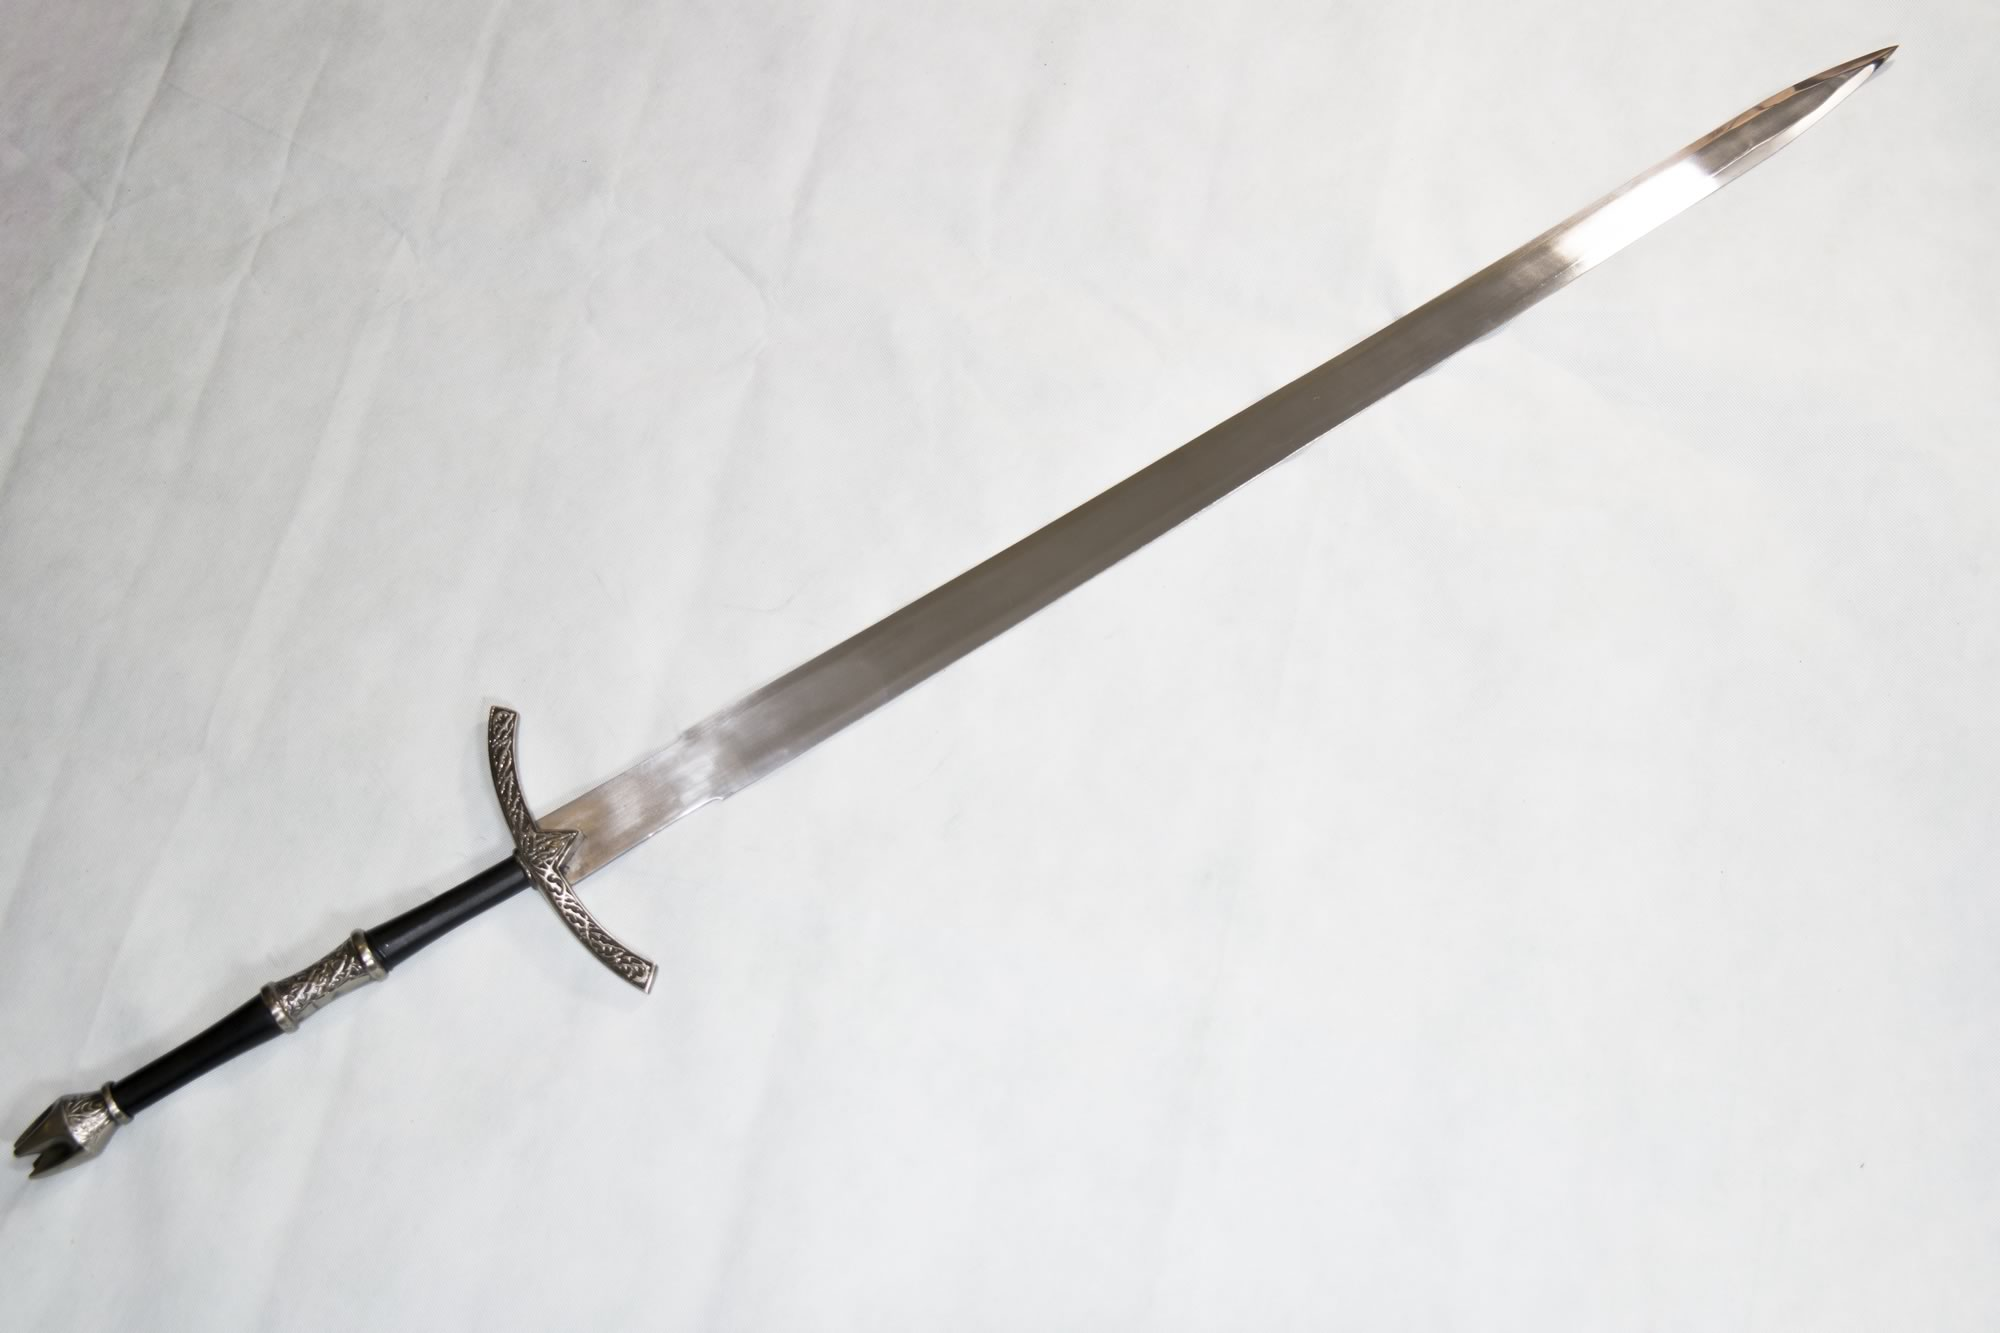 Nazgul Witch King Sword 163 49 50 Dragon Reborn